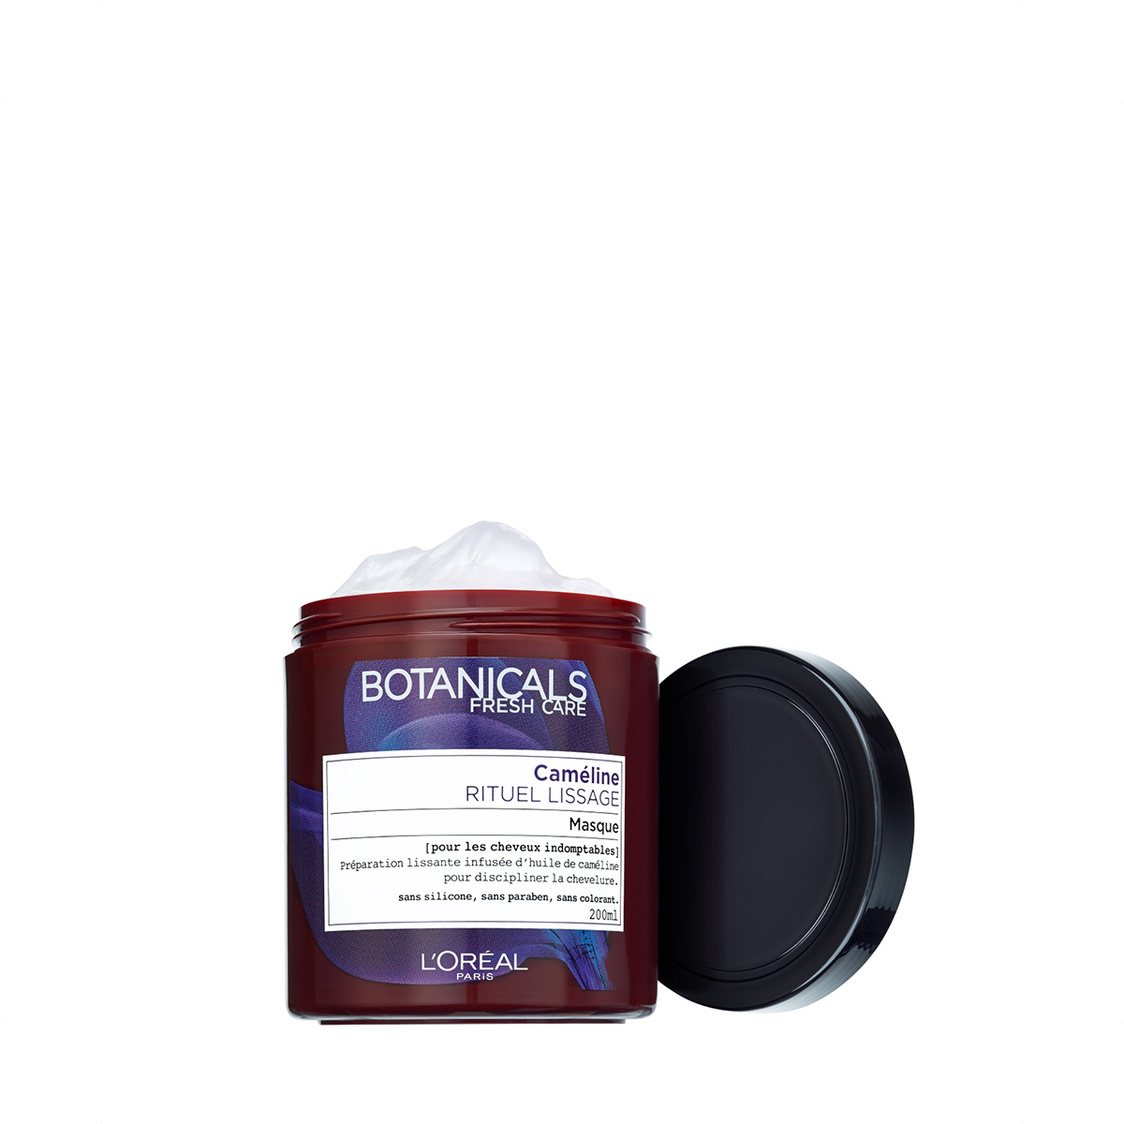 Botanicals Camelina Smooth Ritual Masque 200ml